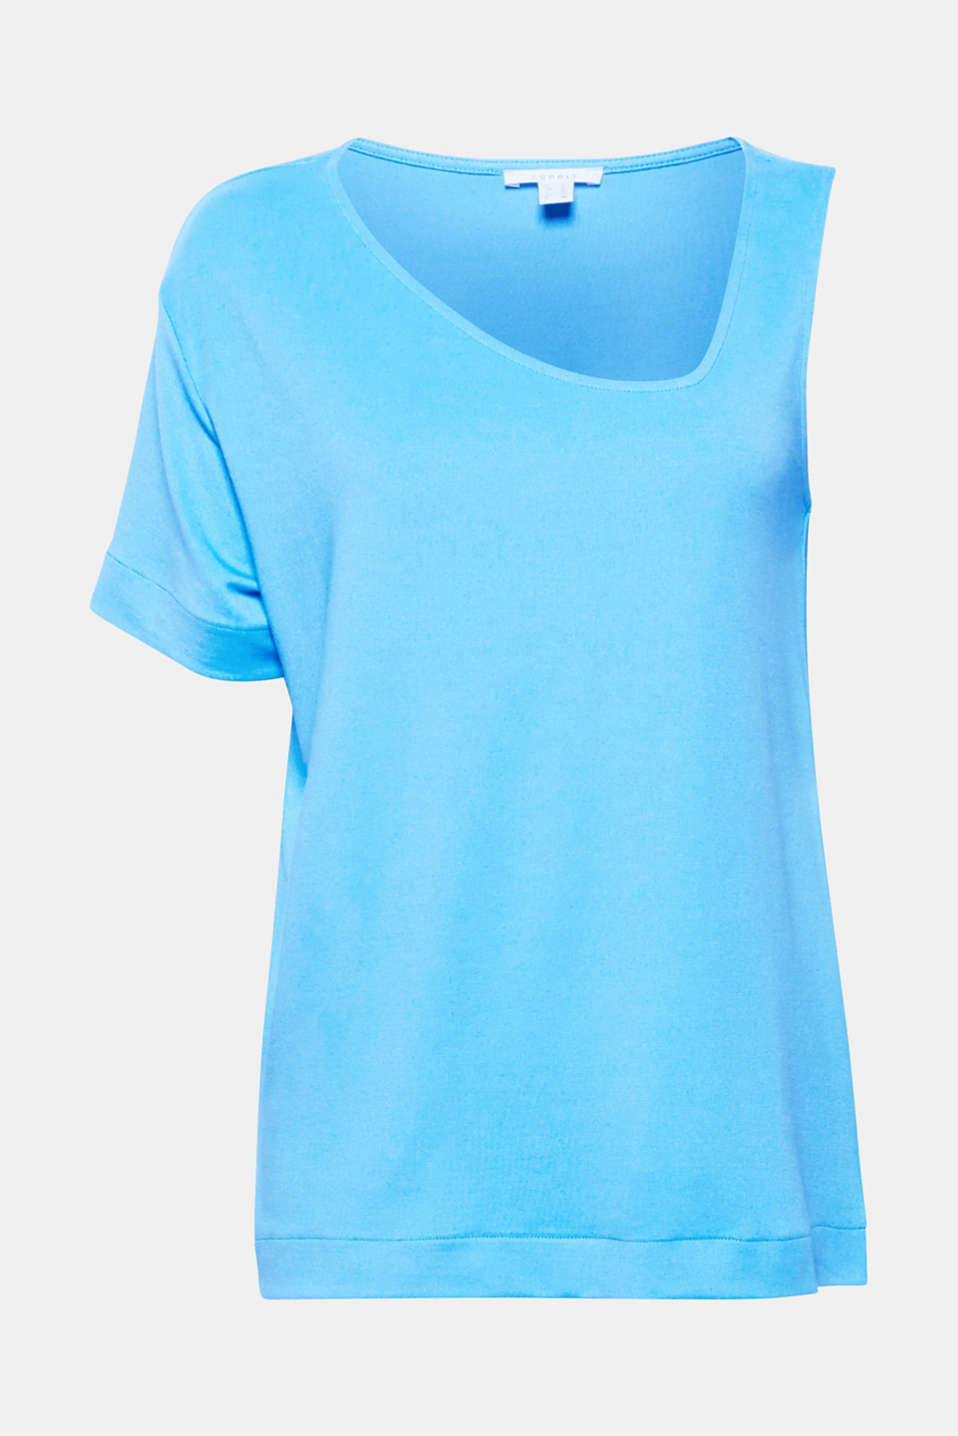 Combines a sexy look with comfort: one-shoulder T-shirt in supersoft draped jersey with added stretch for comfort!